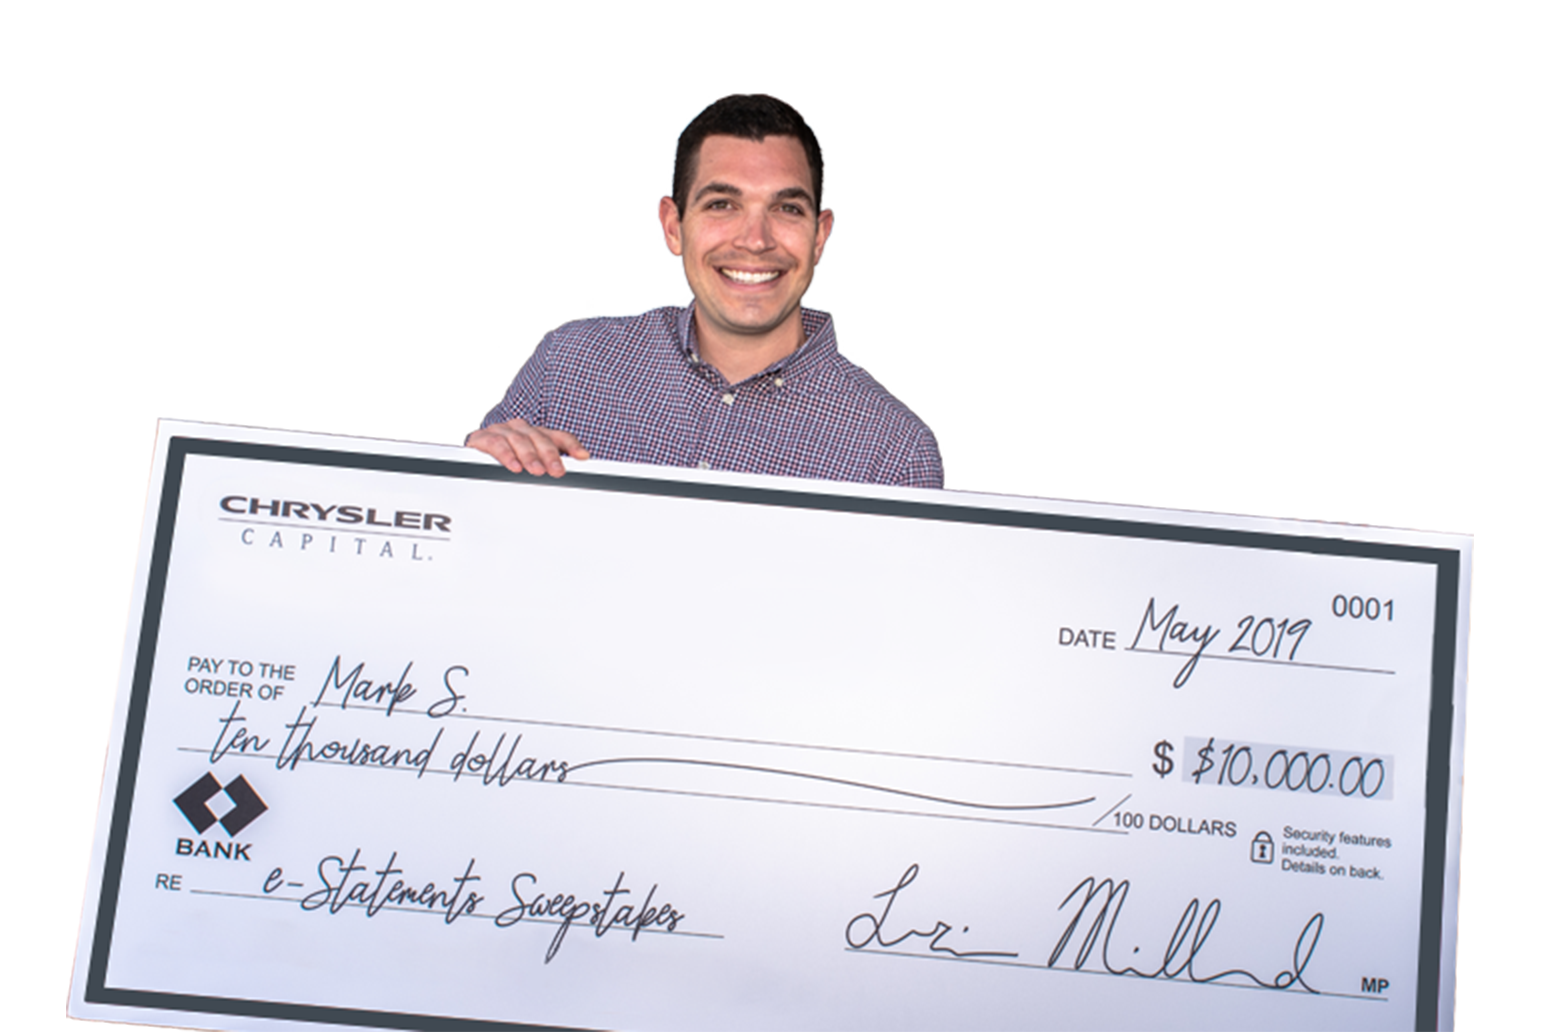 Previous winner holding check